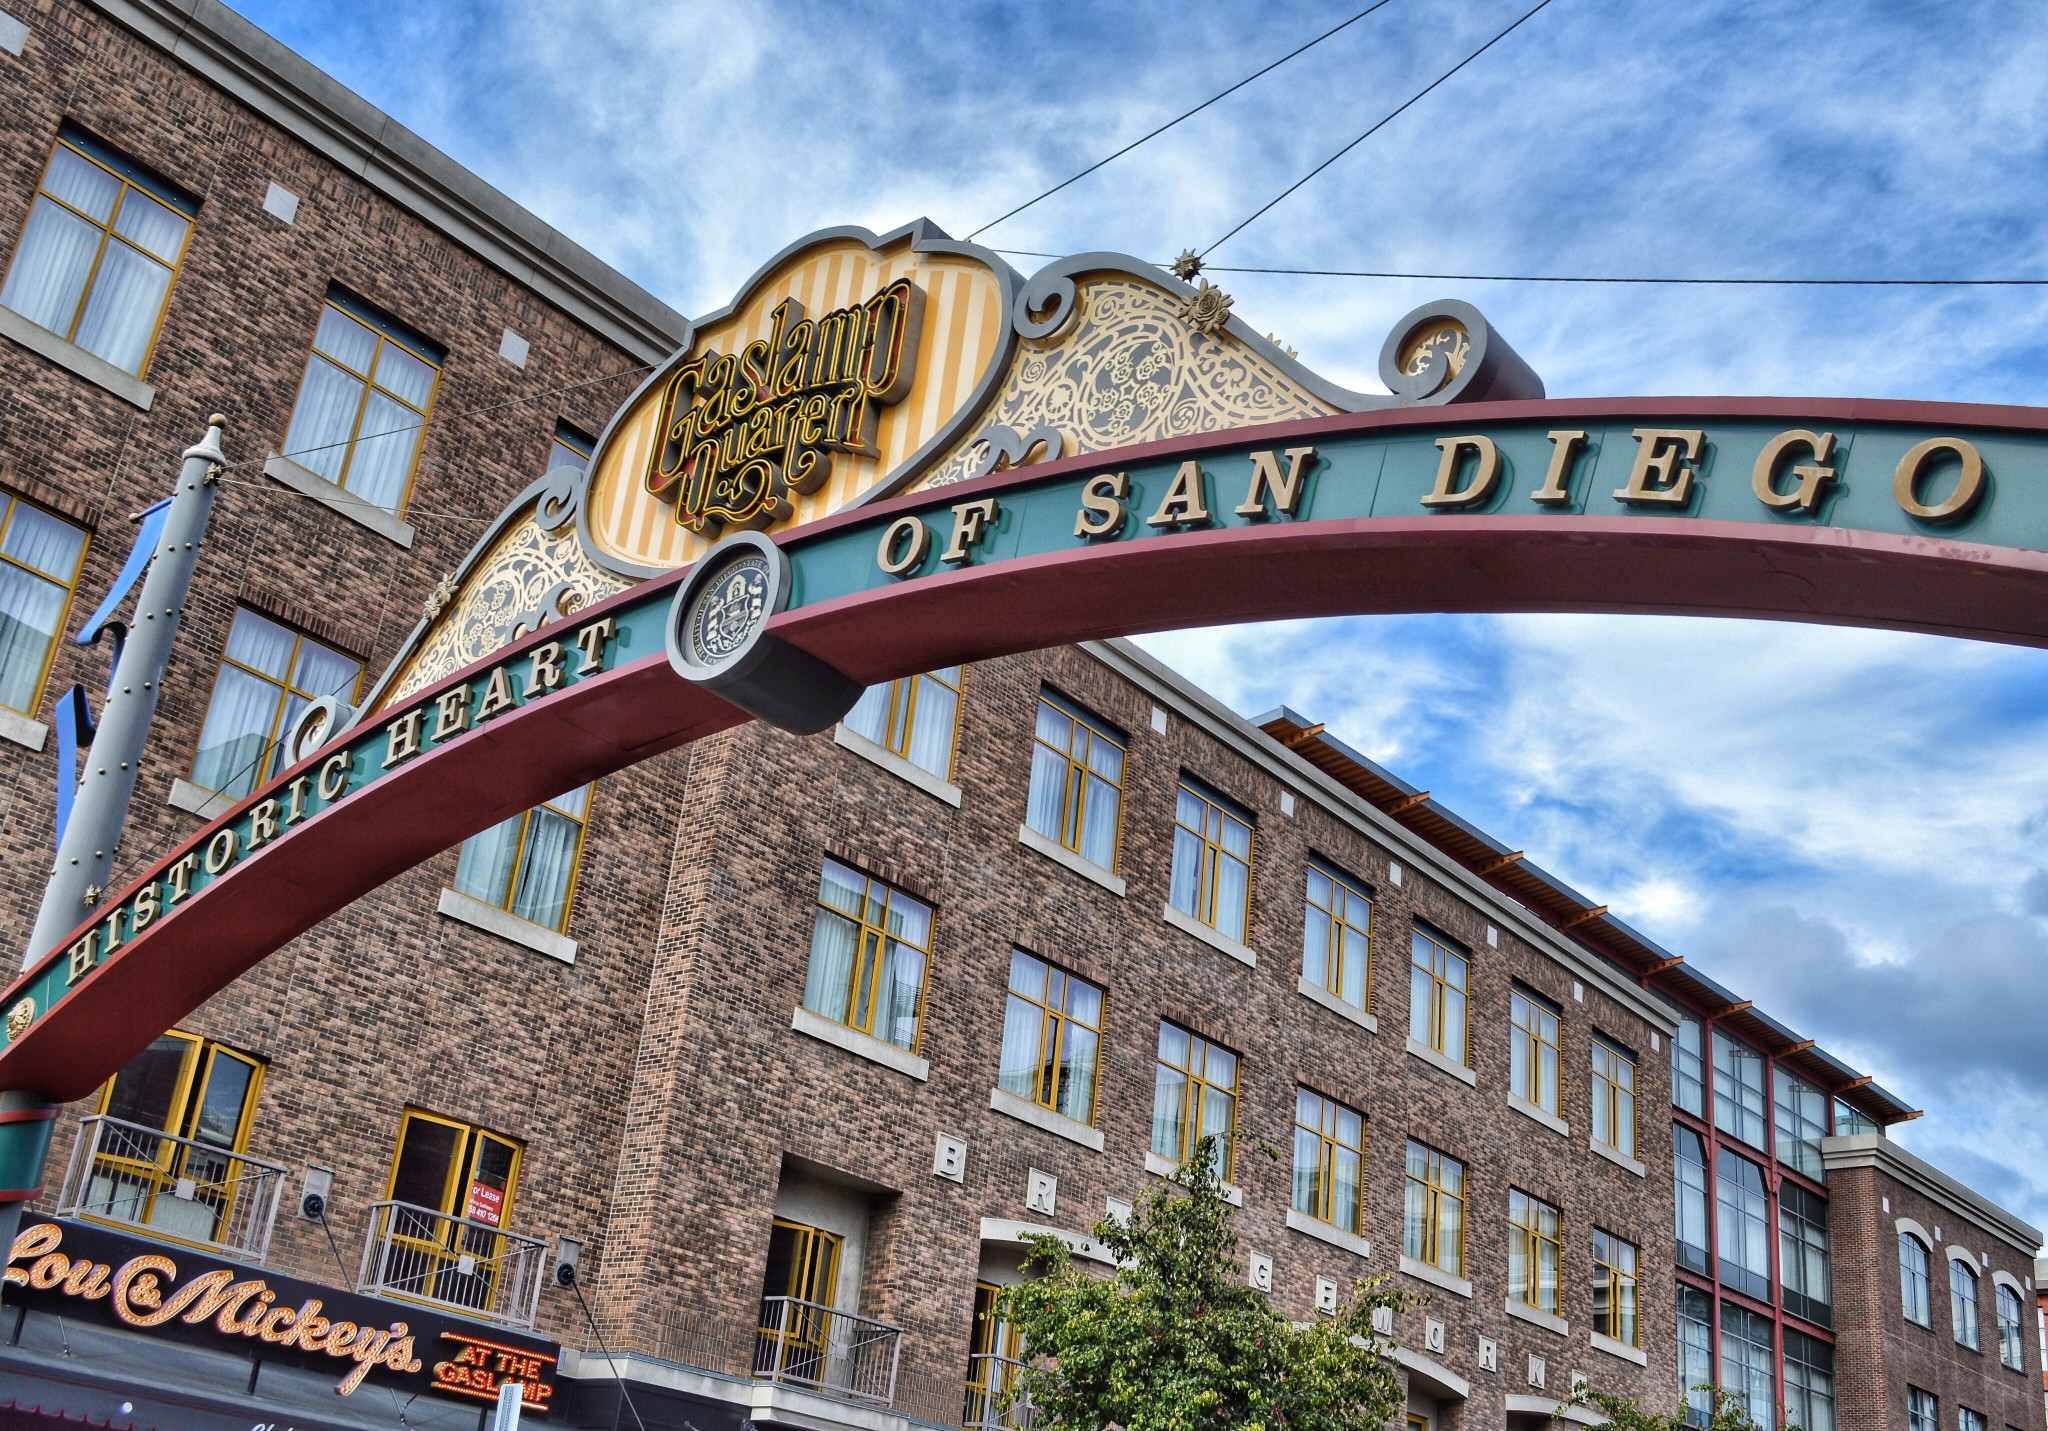 7 Adult and Couples Things to Do in San Diego - Gaslamp District